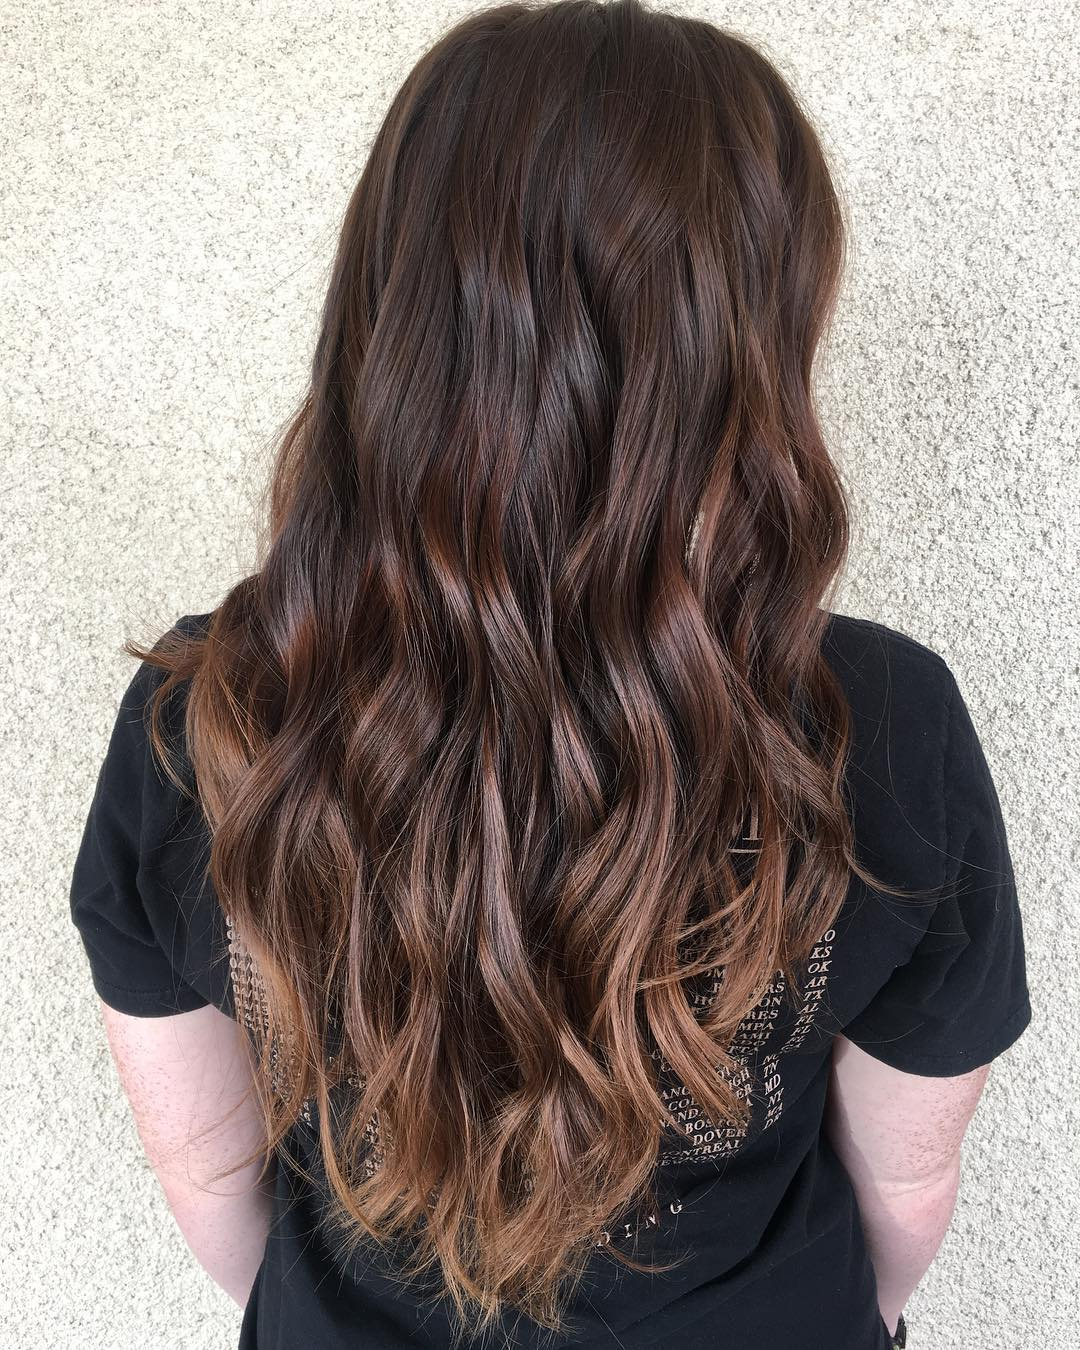 Long Caramel Brown Hair with Waves